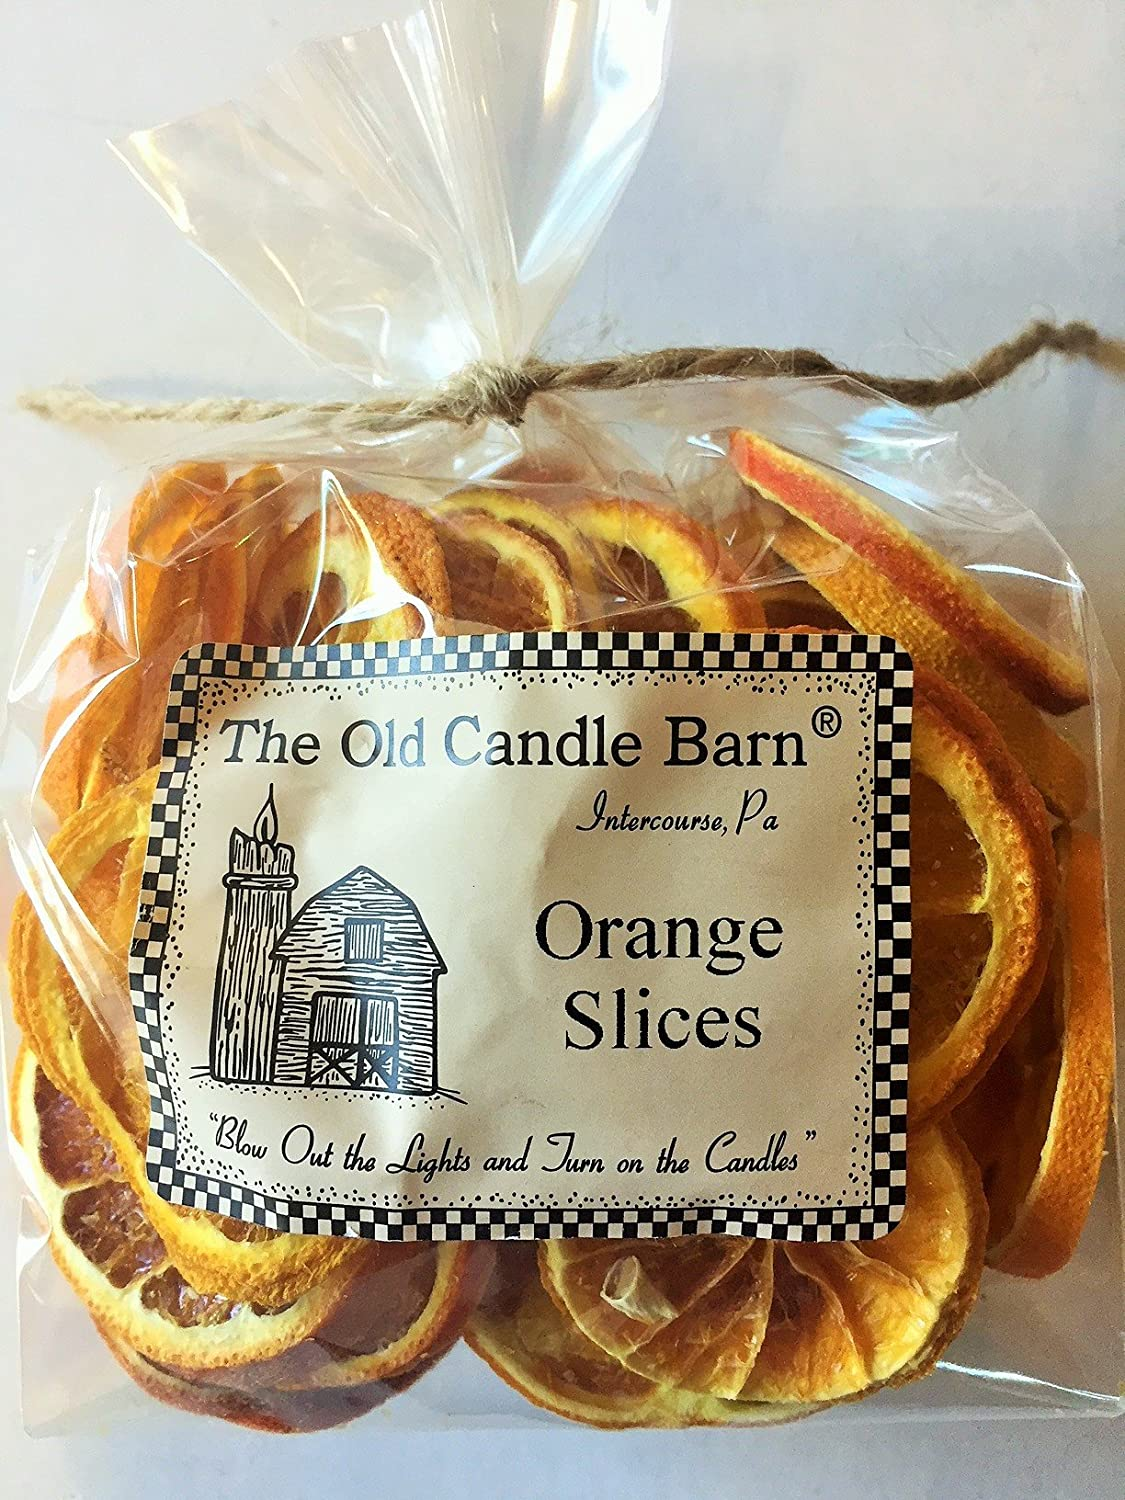 Old Candle Barn Dried Orange Slices for Crafting, Potpourri, or Decorative Bowl Filler - 2 Cup Bag